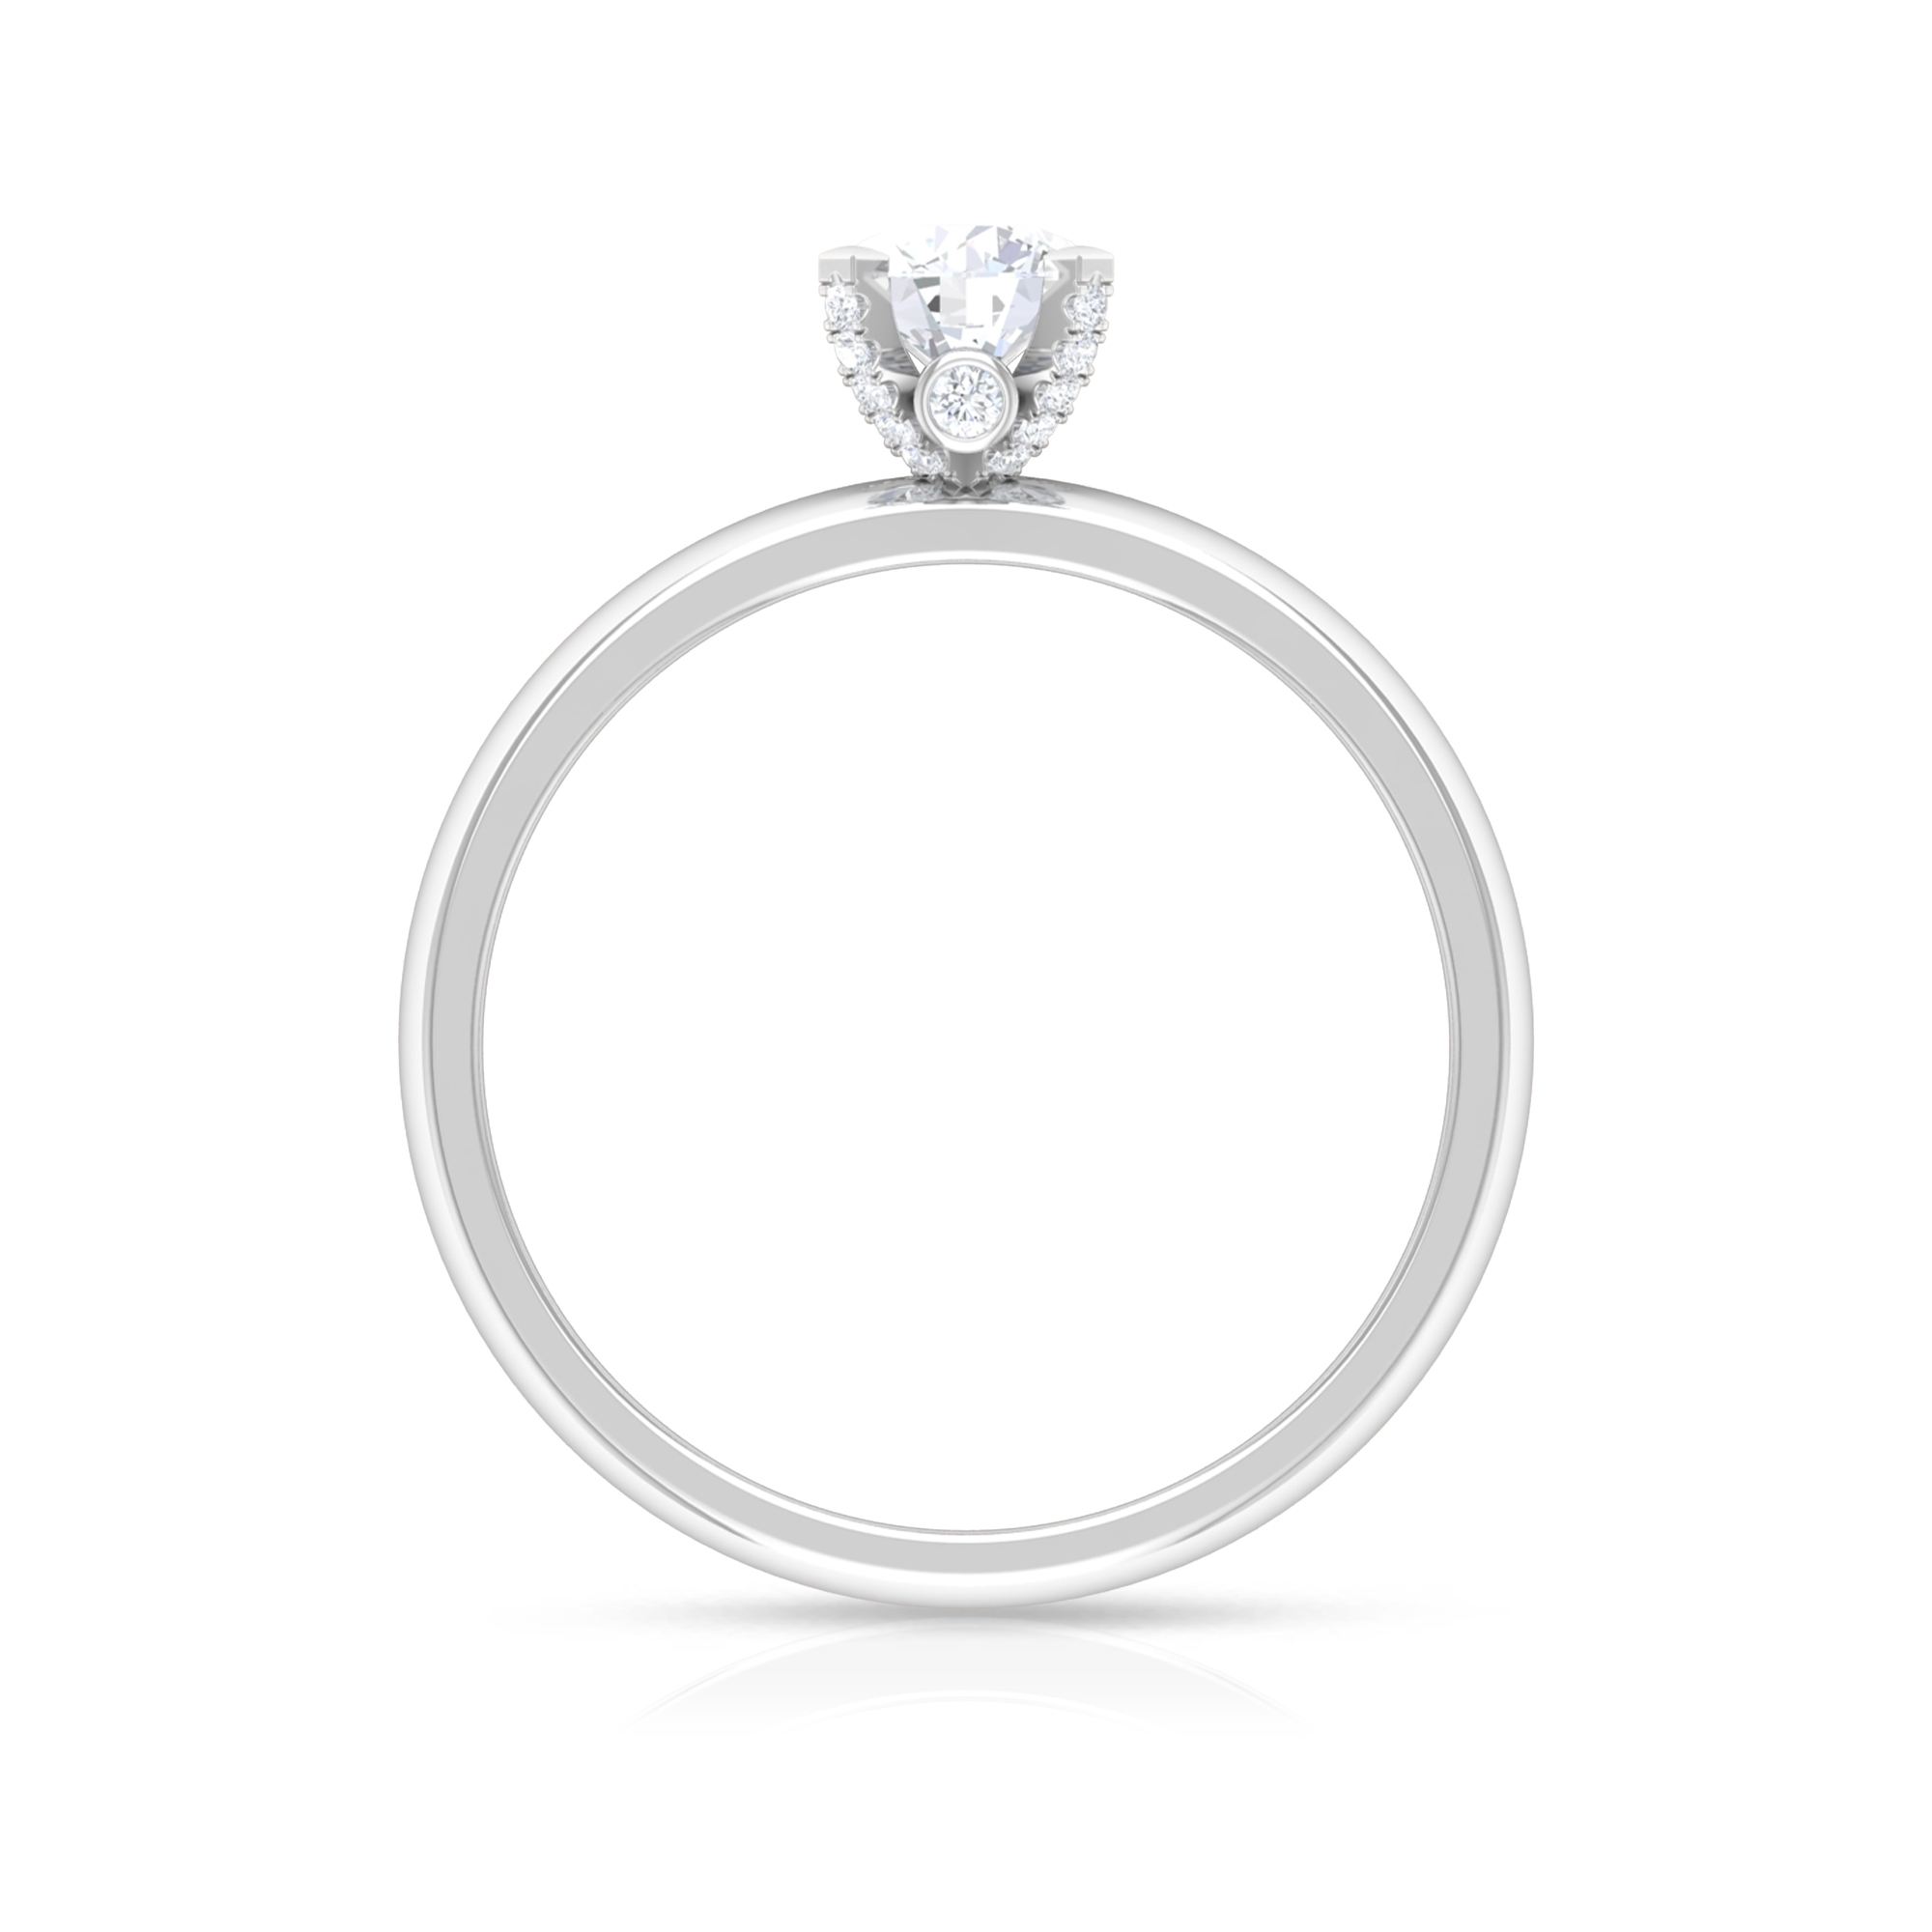 1/2 CT Round Cut Diamond Solitaire Ring in Decorative 4 Prong Setting and Surprise Style